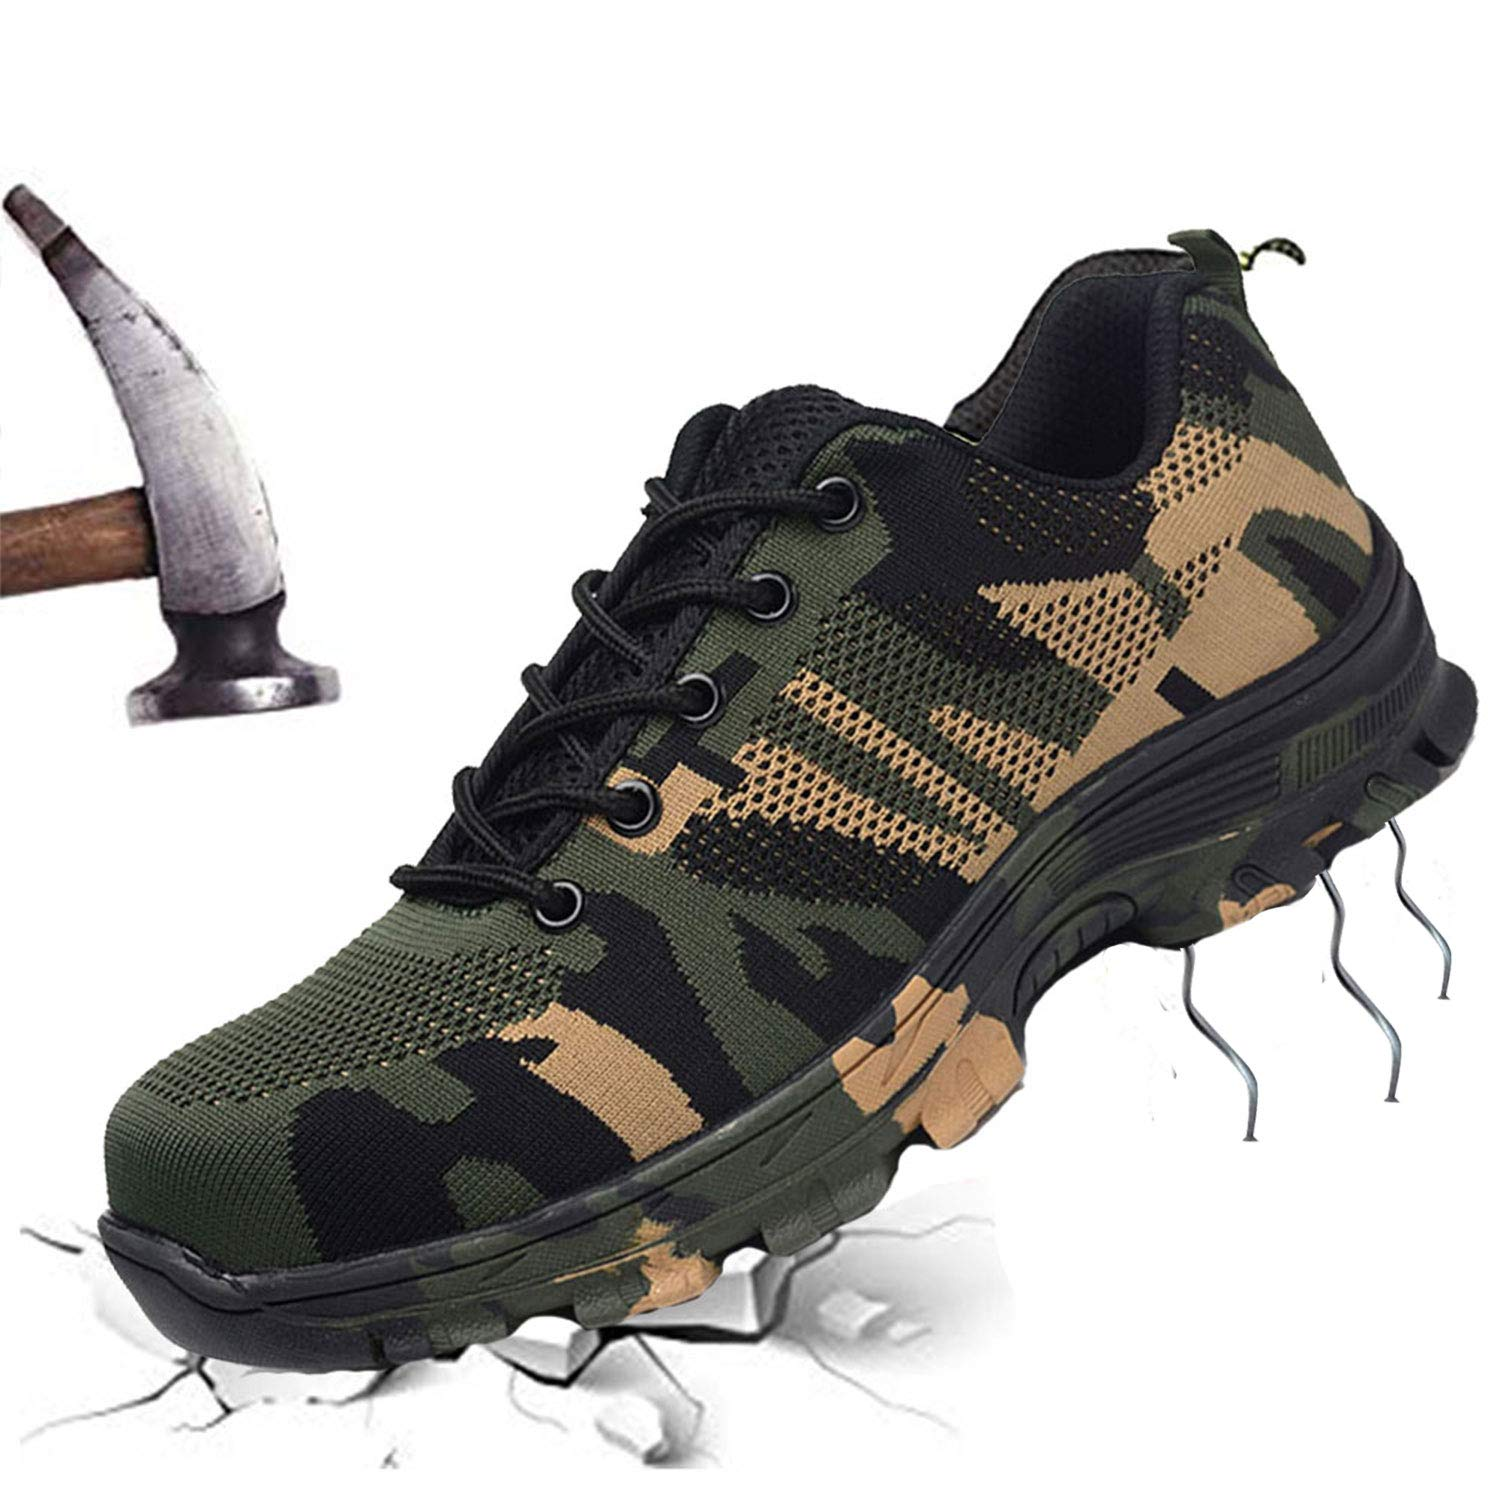 JACKSHIBO Steel Toe Shoes Men Women, Work Safety Shoes Breathable Industrial Construction Shoes Outdoor Hiking Shoes Camouflage Green